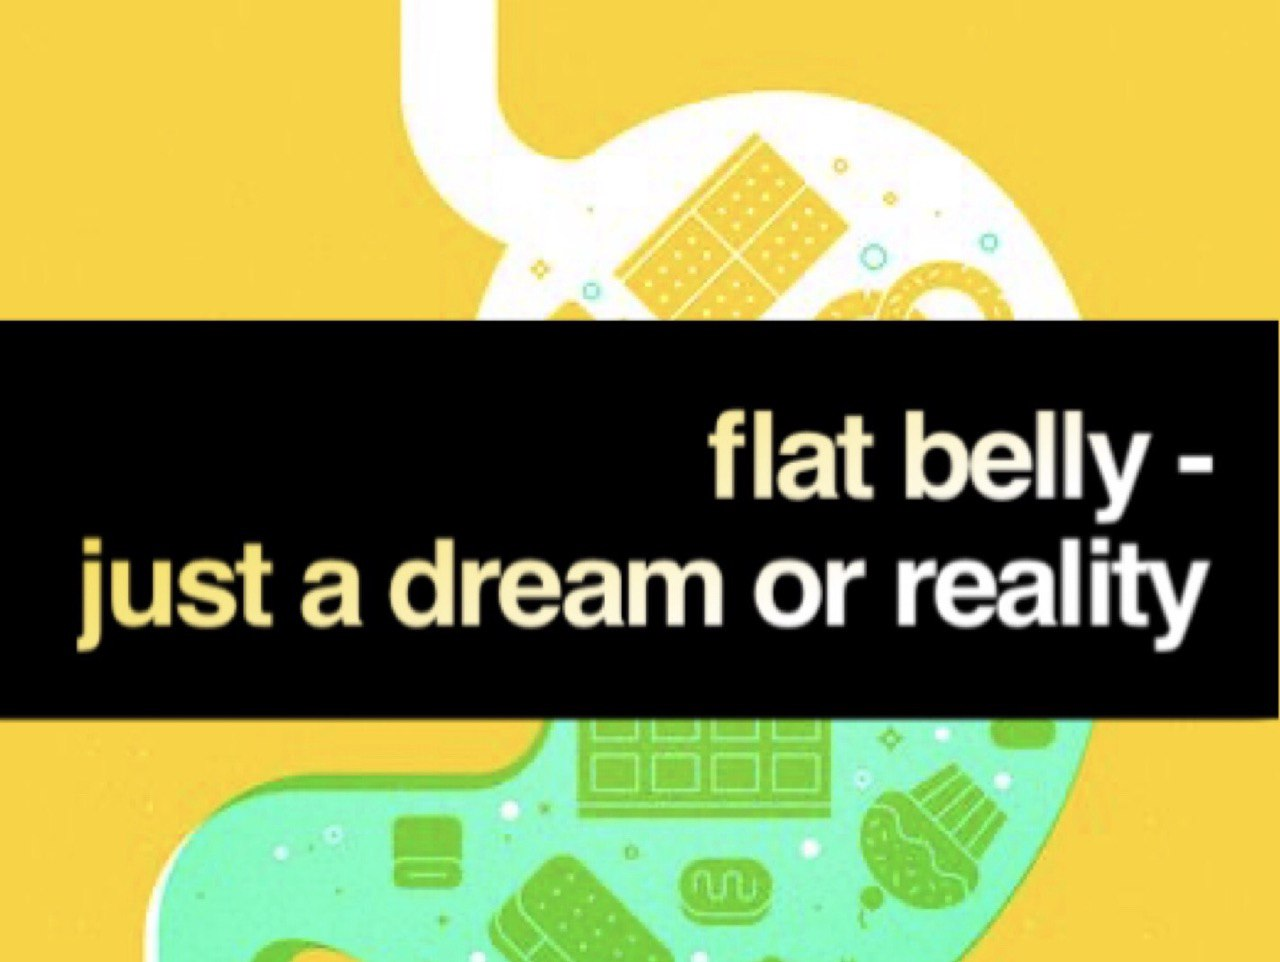 flat belly just a dream or reality